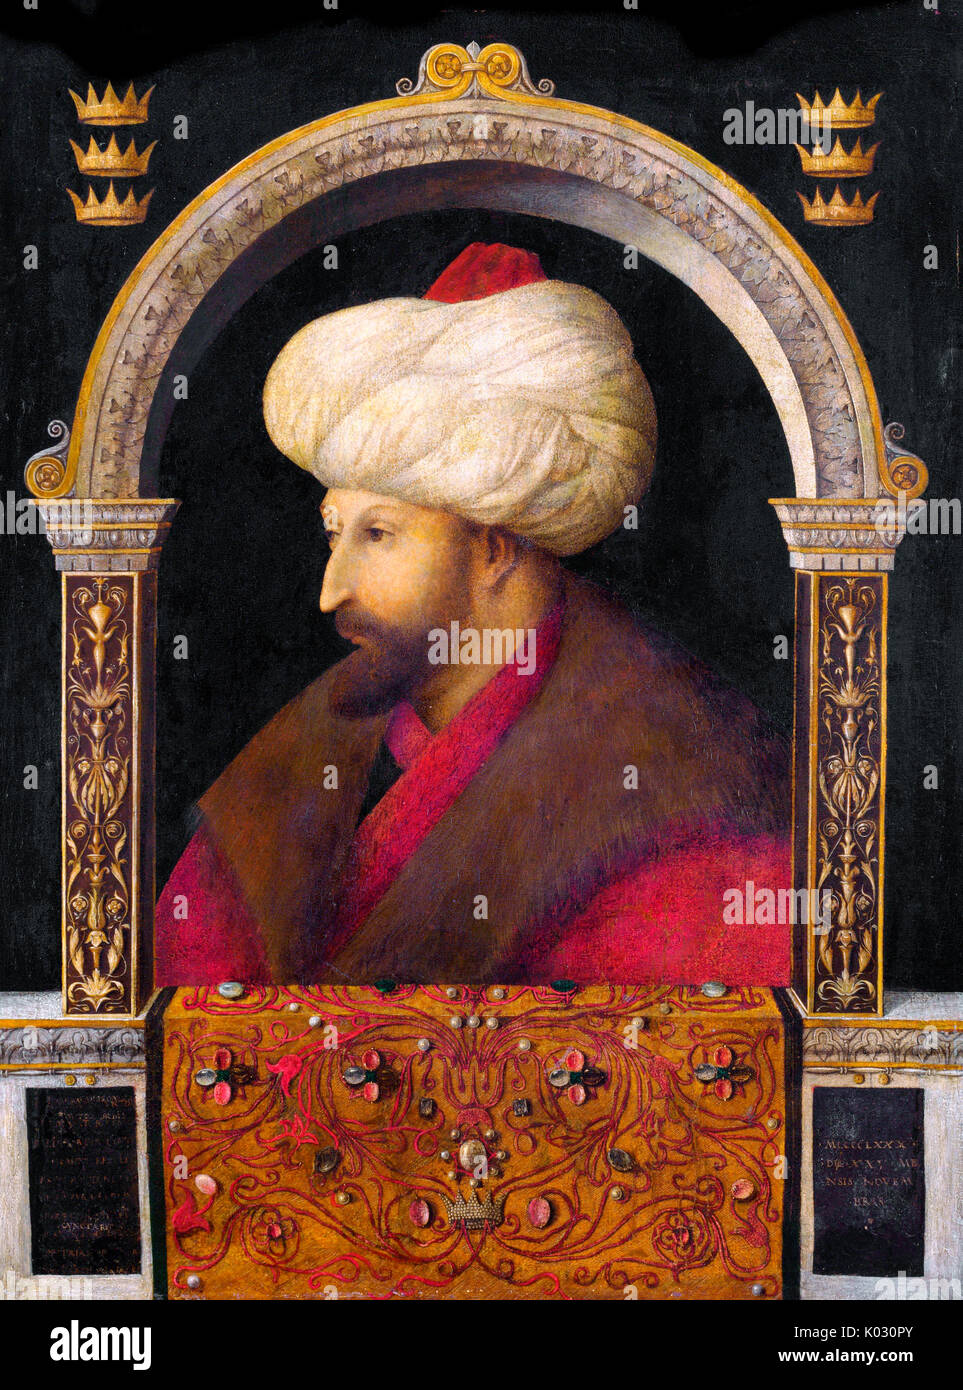 The Portrait of Ottoman Sultan Mehmed the Conqueror by Italian painter Gentile Bellini, 1480. - Stock Image